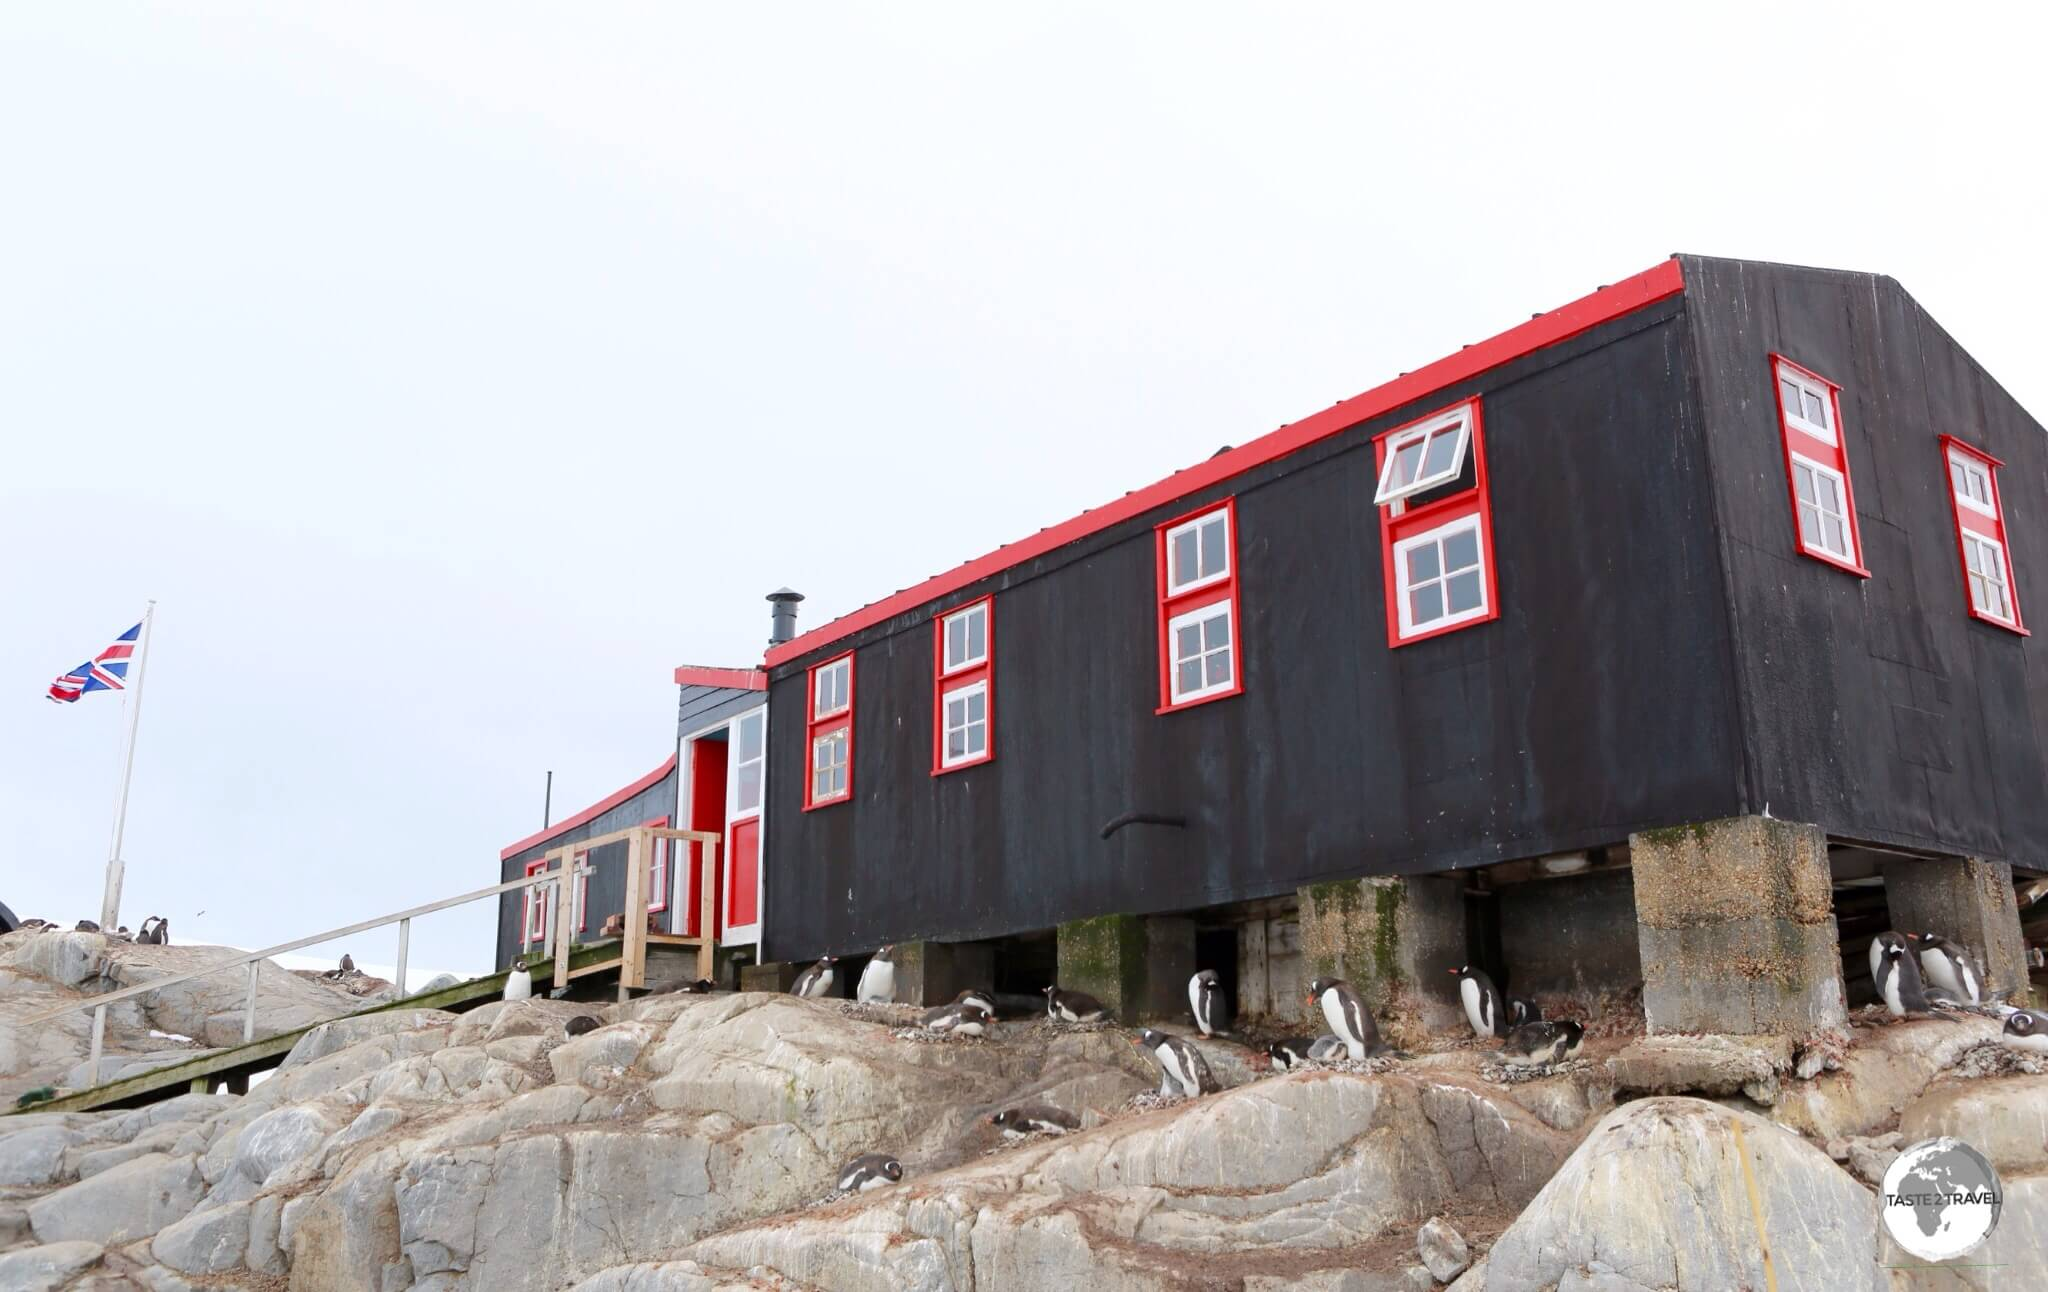 Bransfield House at Port Lockroy was constructed in 1944 and today houses a Post Office (the only shopping opportunity in Antarctica) and a small museum.